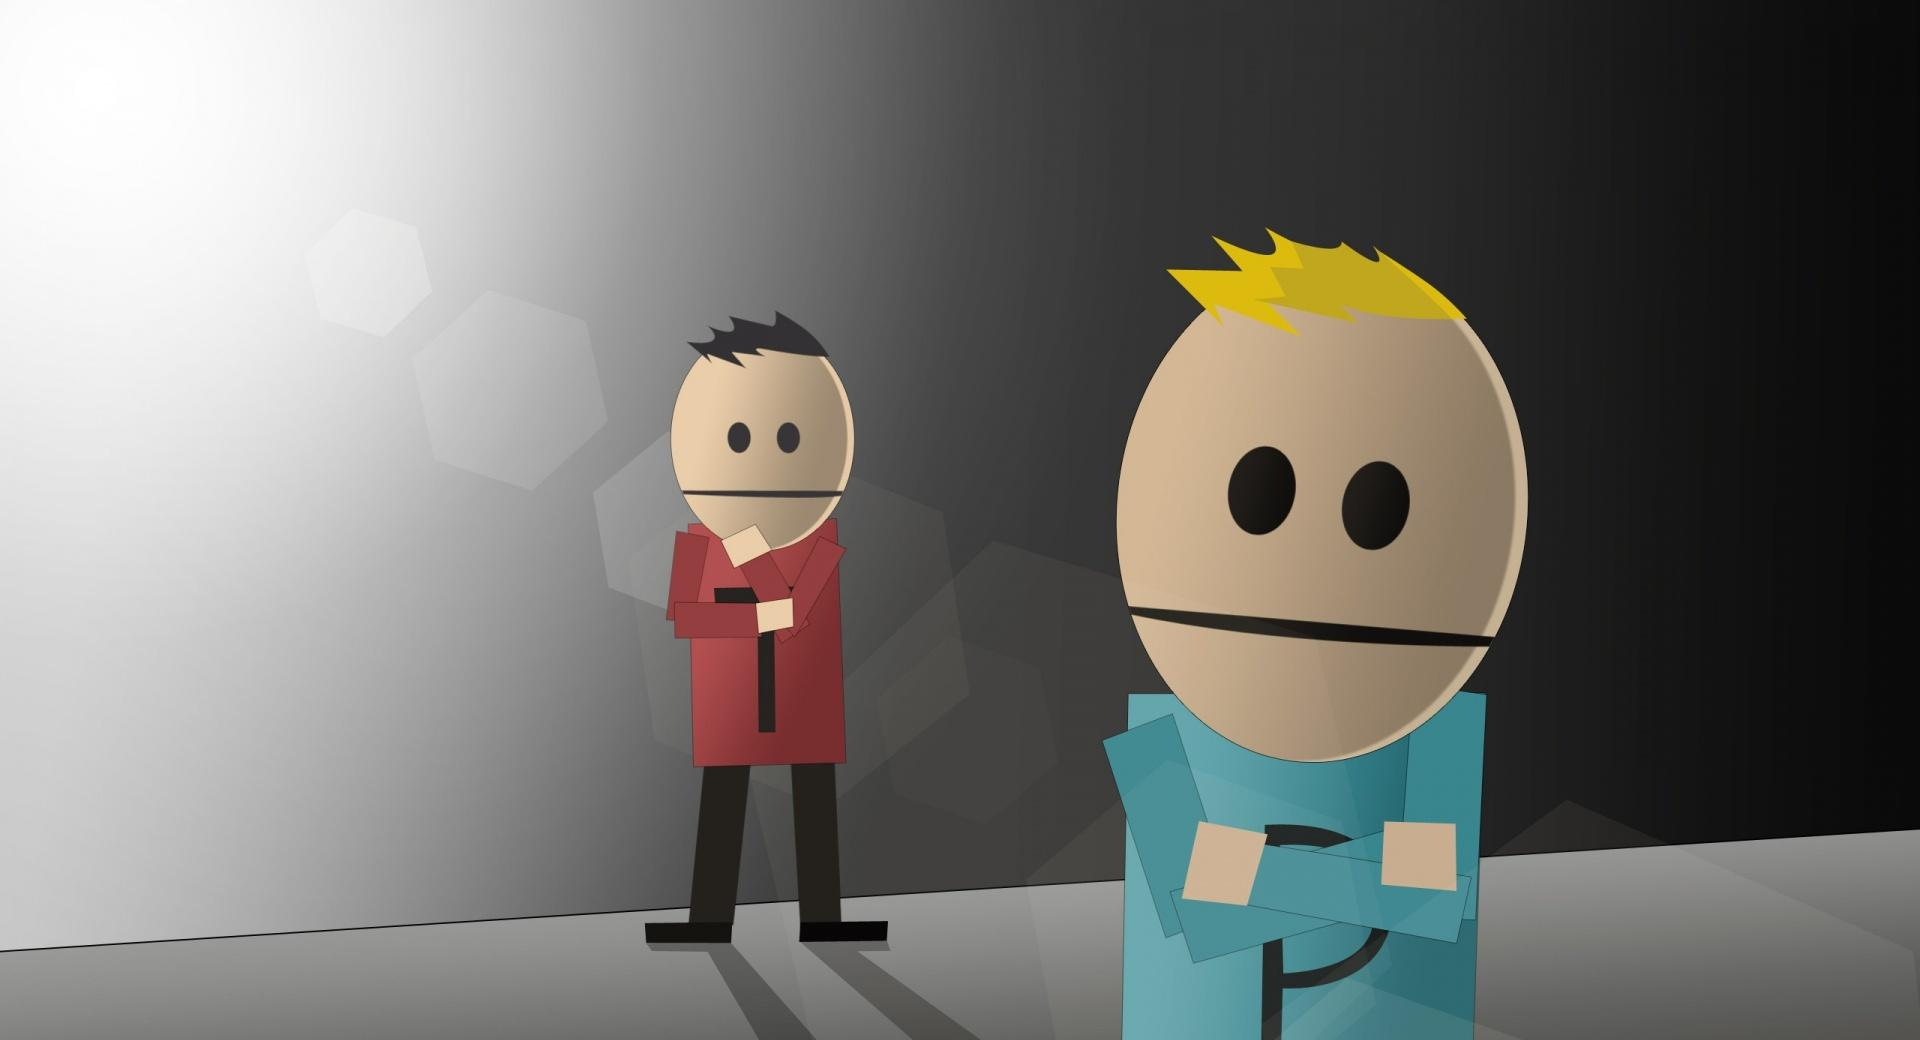 Terence And Philip South Park wallpapers HD quality